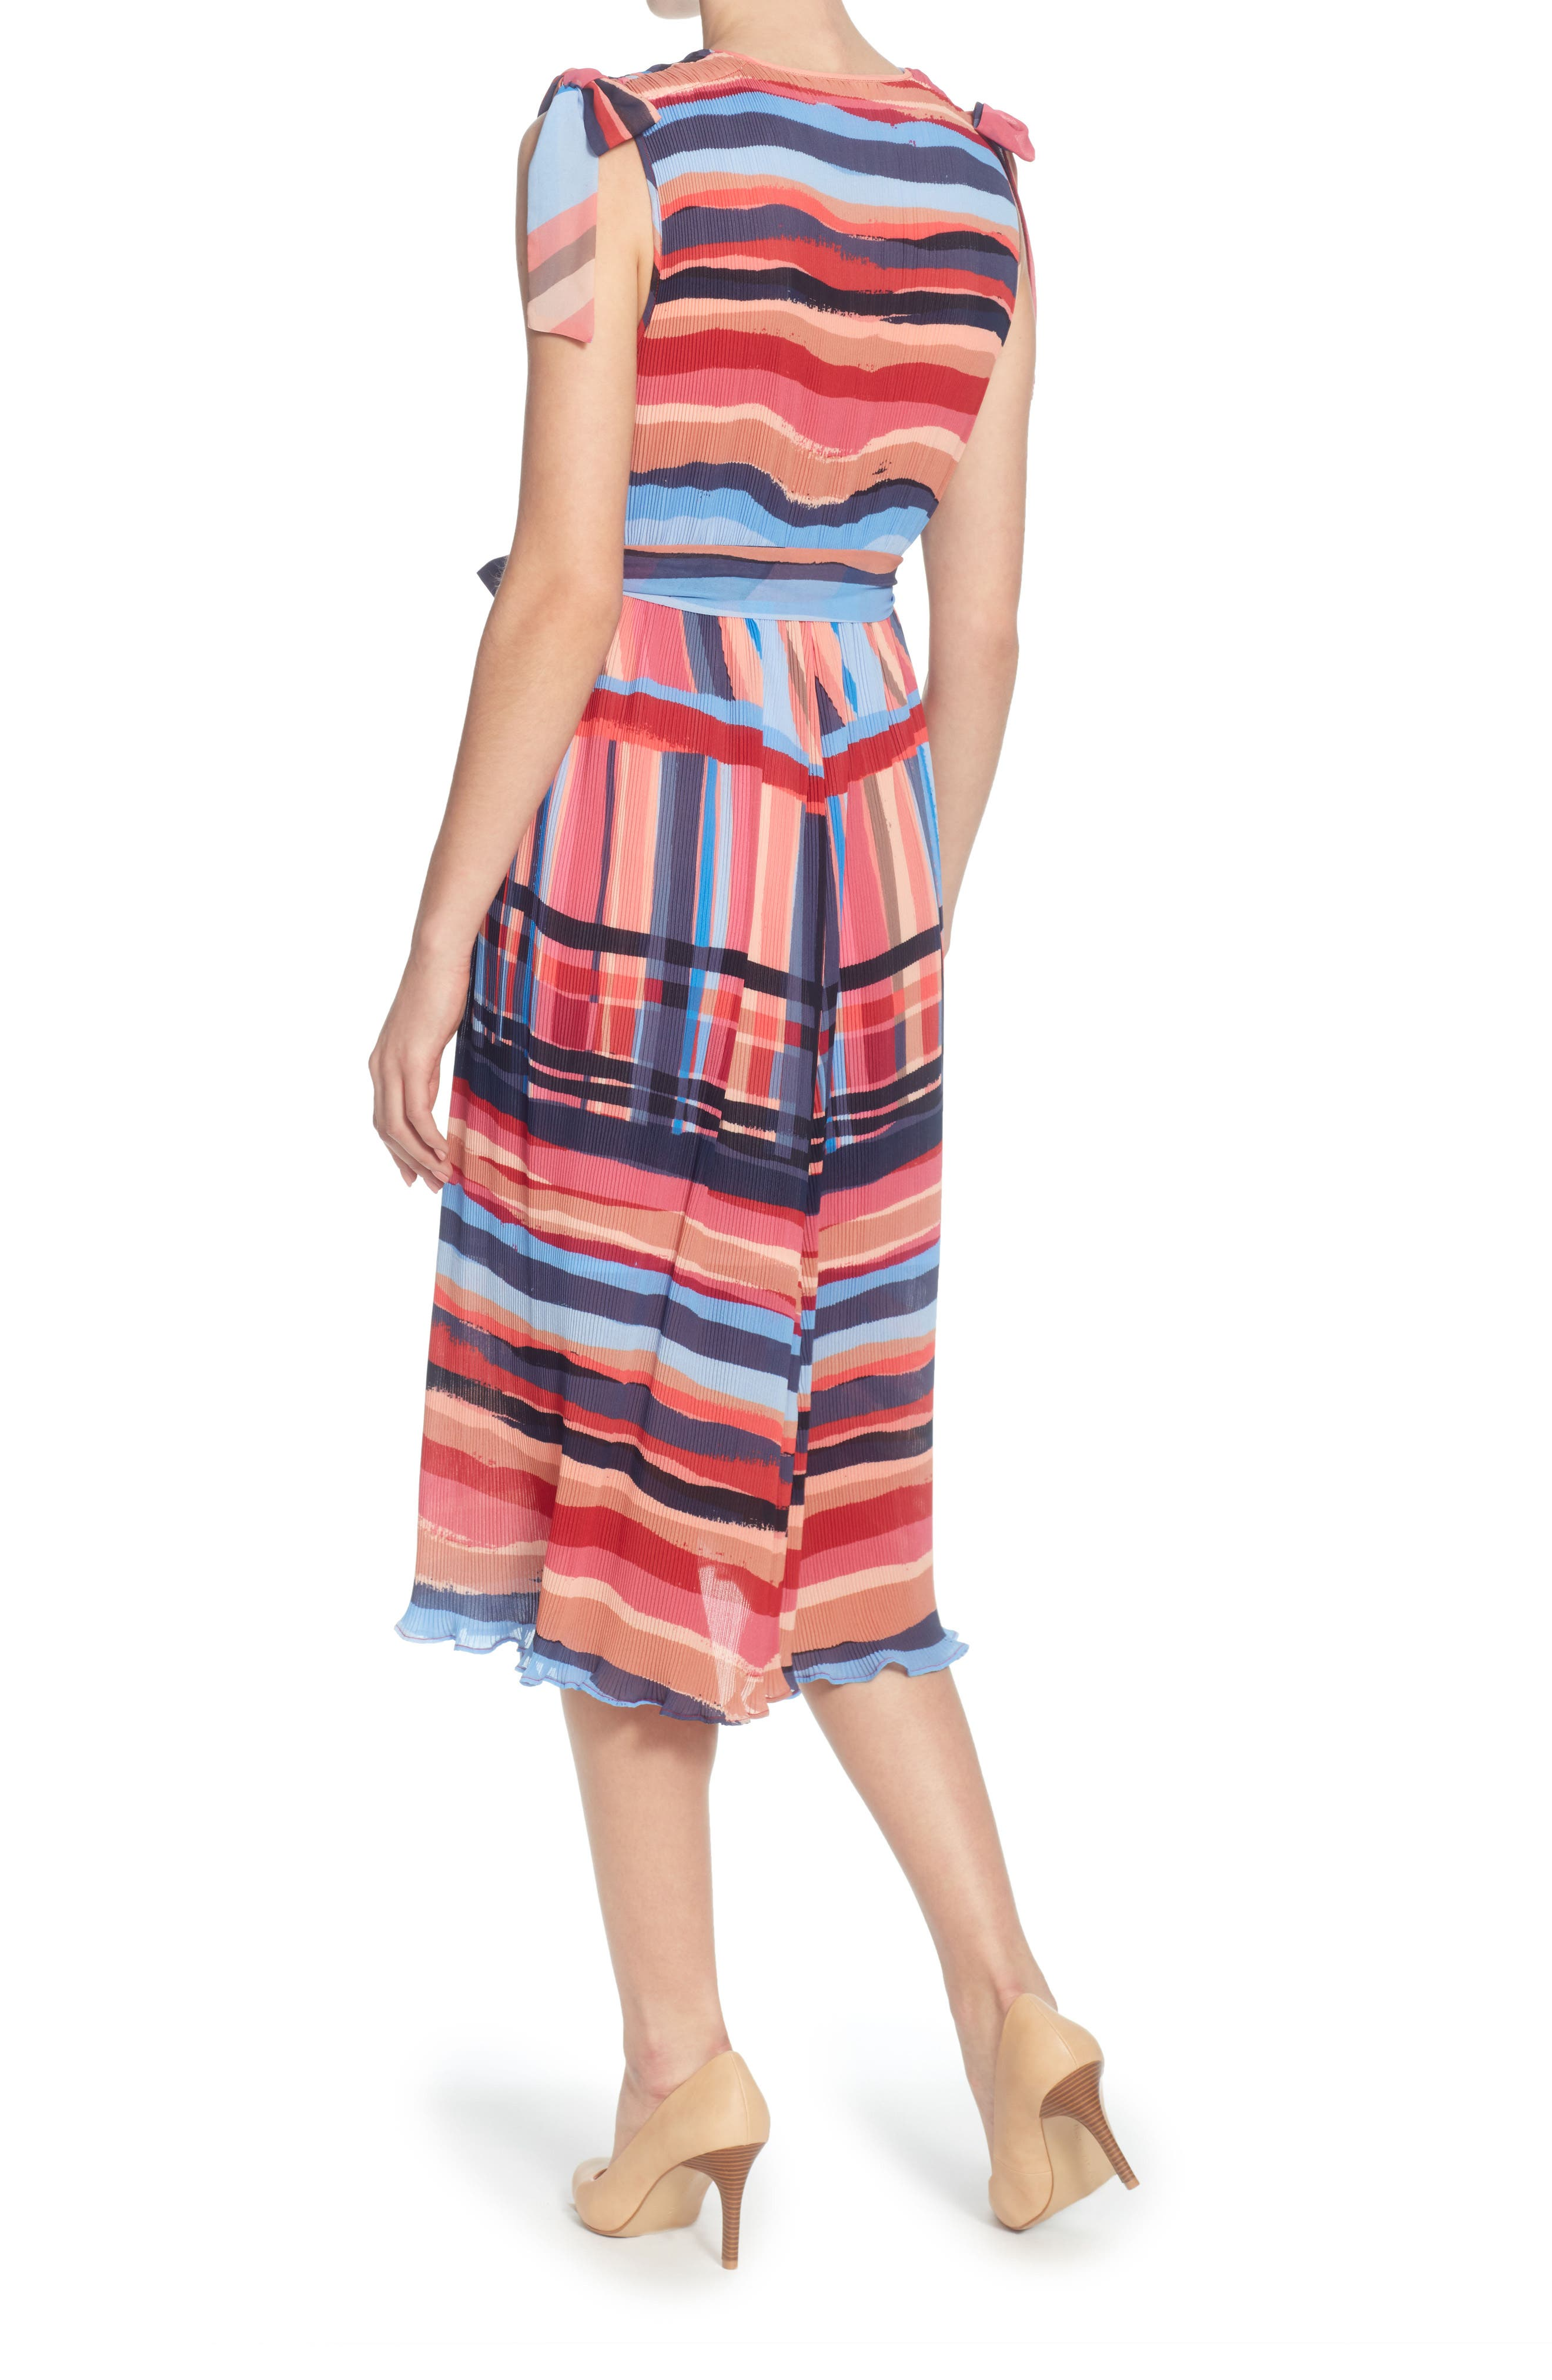 Micropleat Dress,                             Alternate thumbnail 2, color,                             Washed Stripe